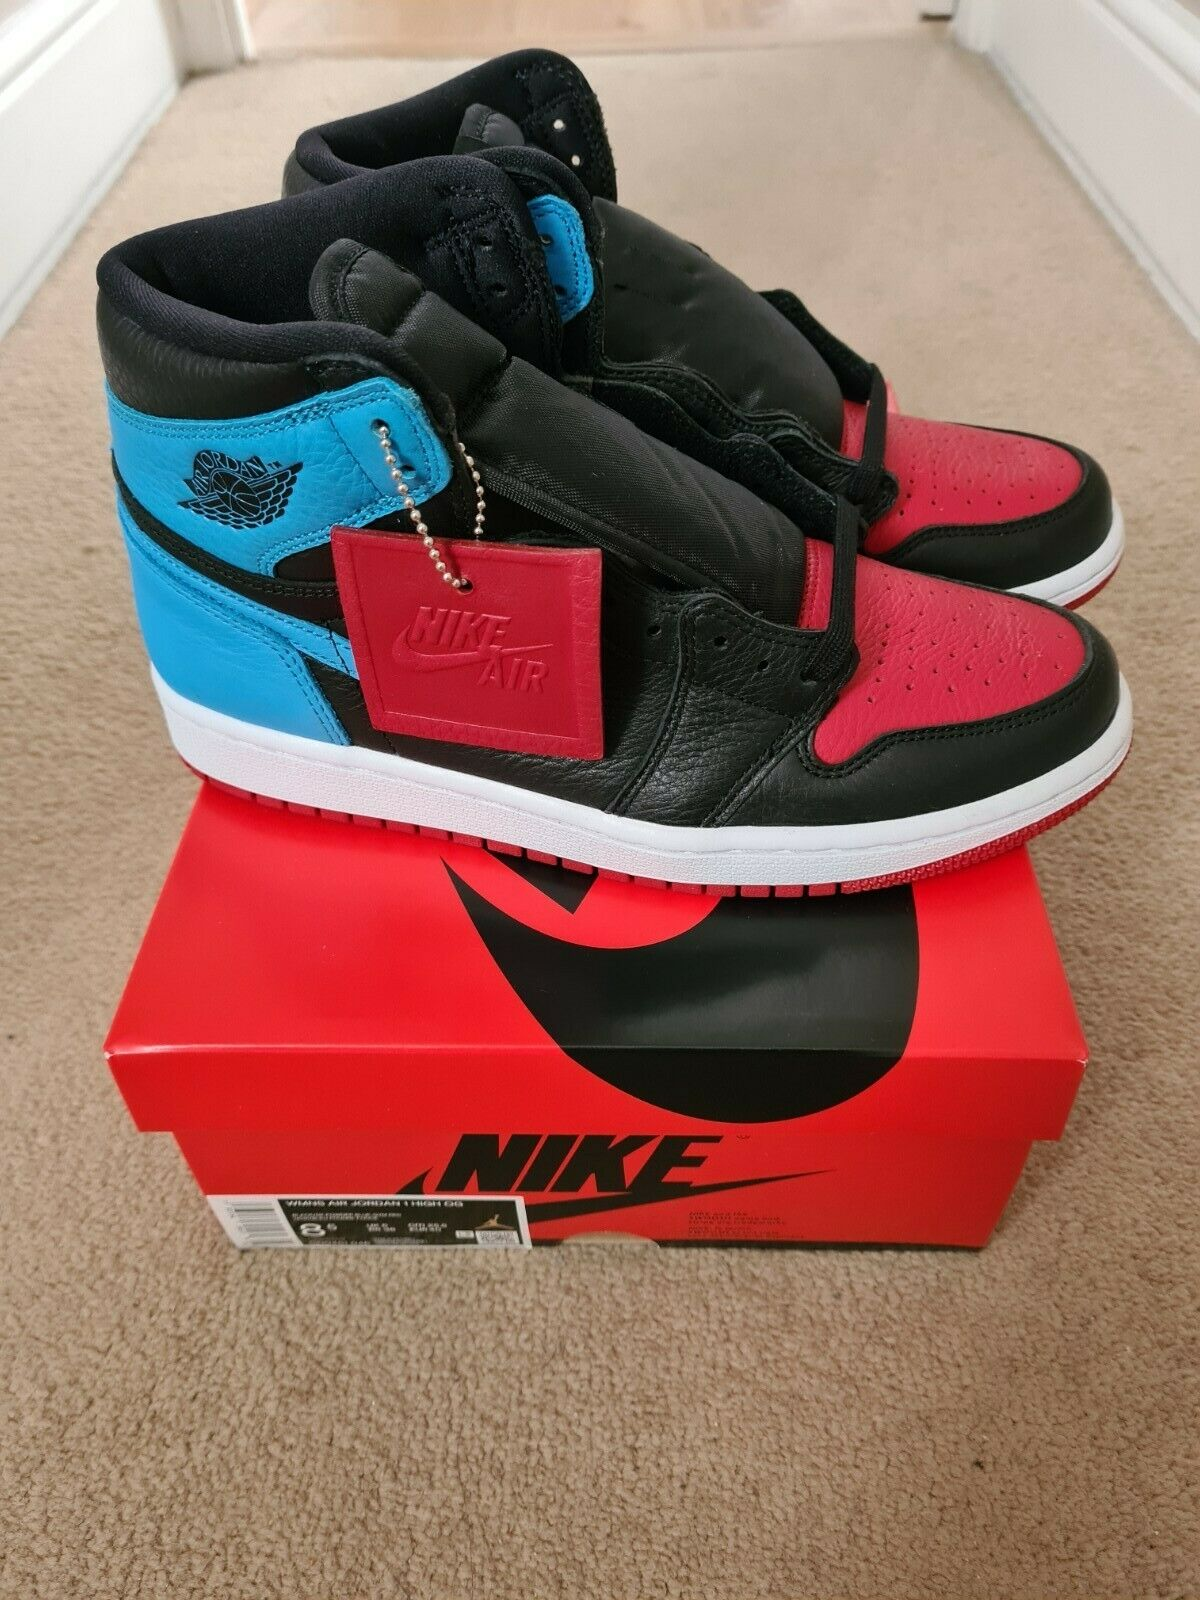 Jordan 1 Retro High UNC to Chi Leather (W) UK 6 Brand New (FACTORY DEFECT)